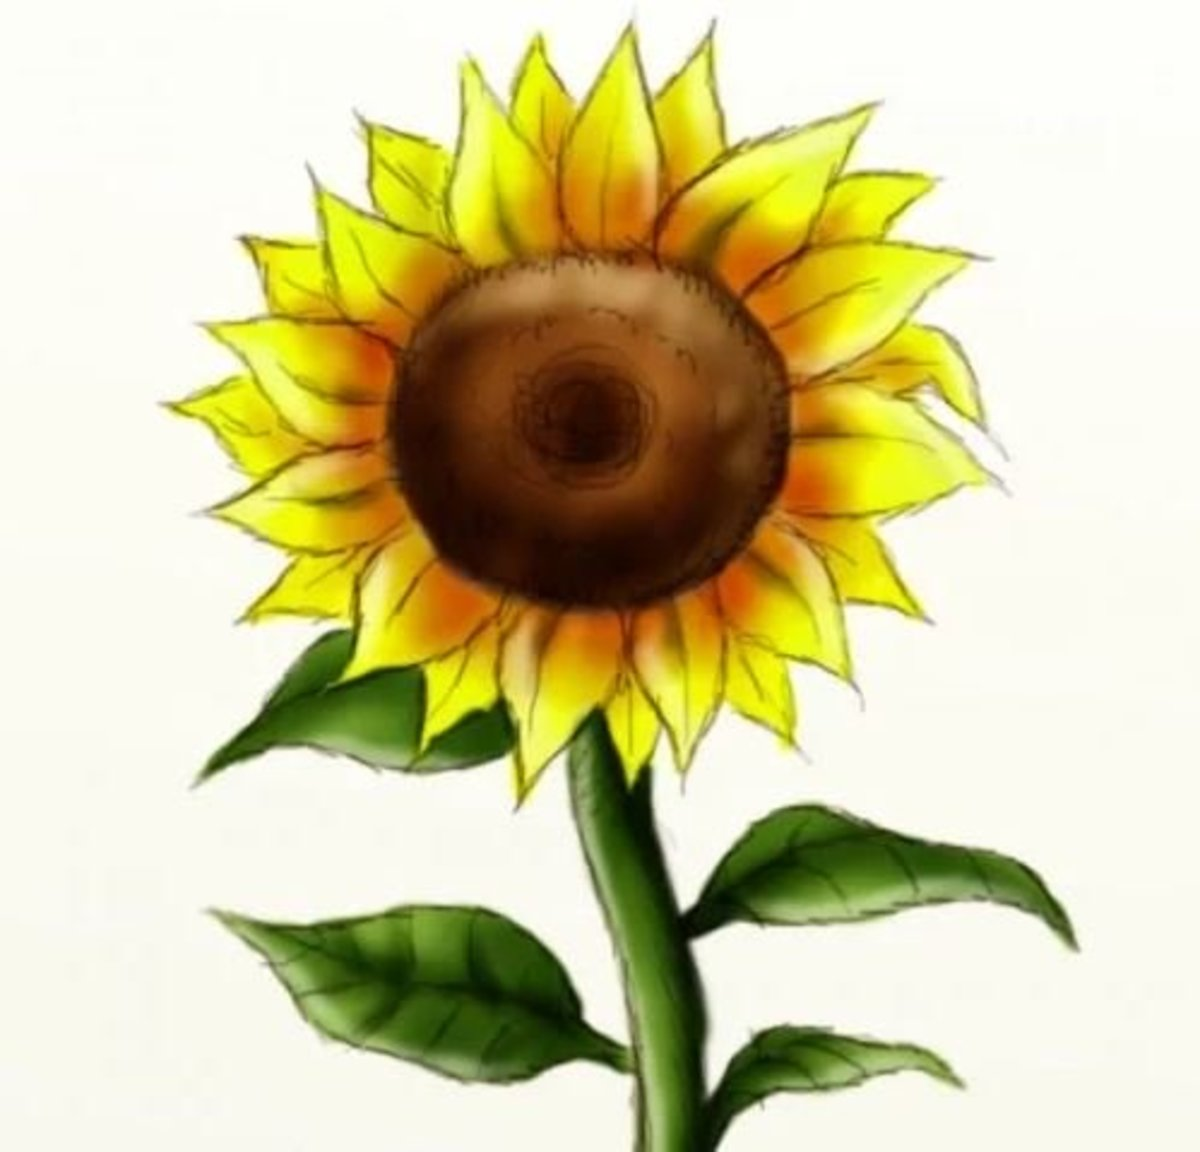 Learn how to draw a beautiful sunflower in just 10 simple steps.